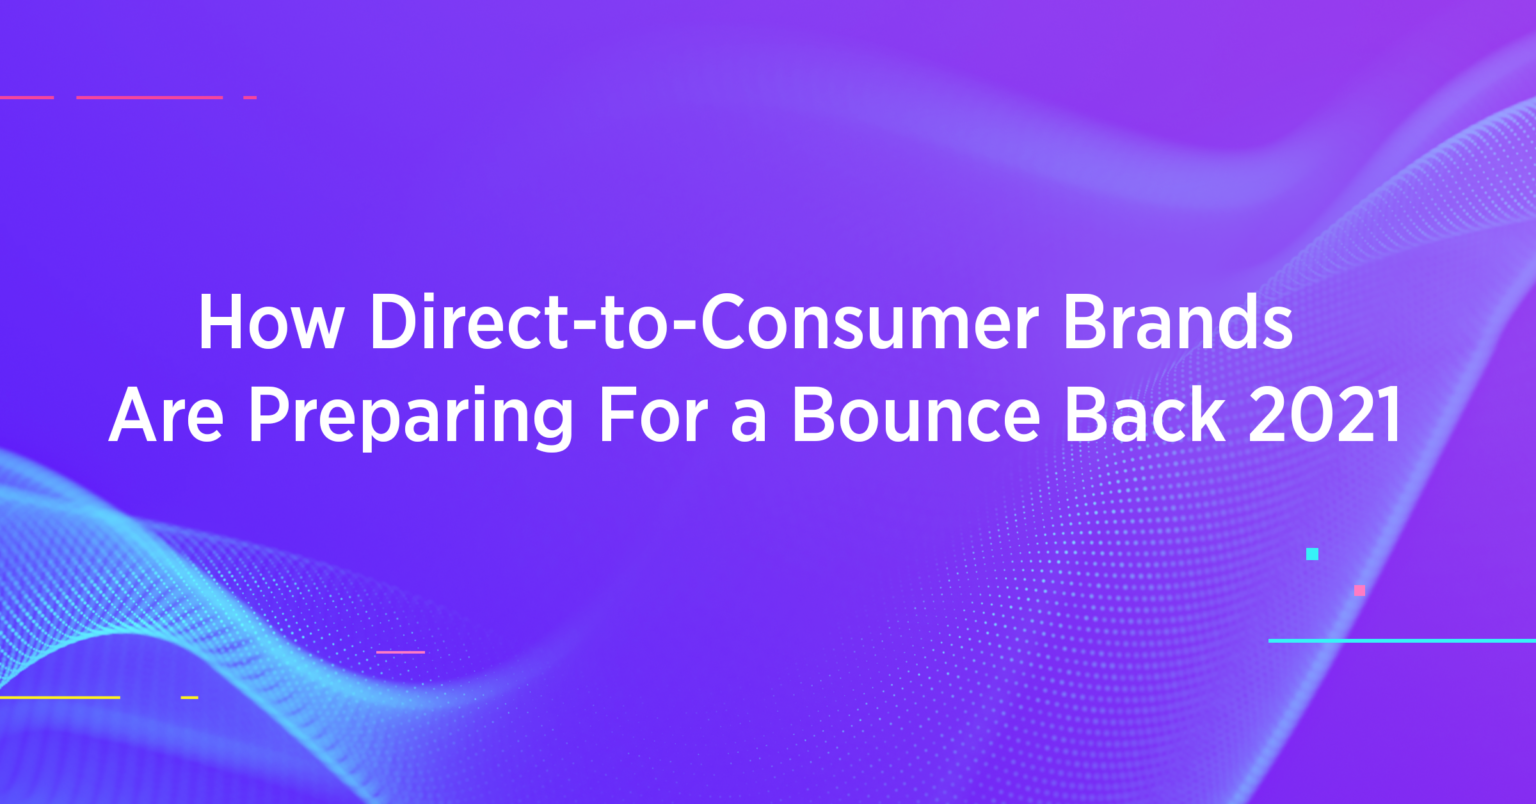 How Direct-to-Consumer Brands Are Preparing For a Bounce Back 2021